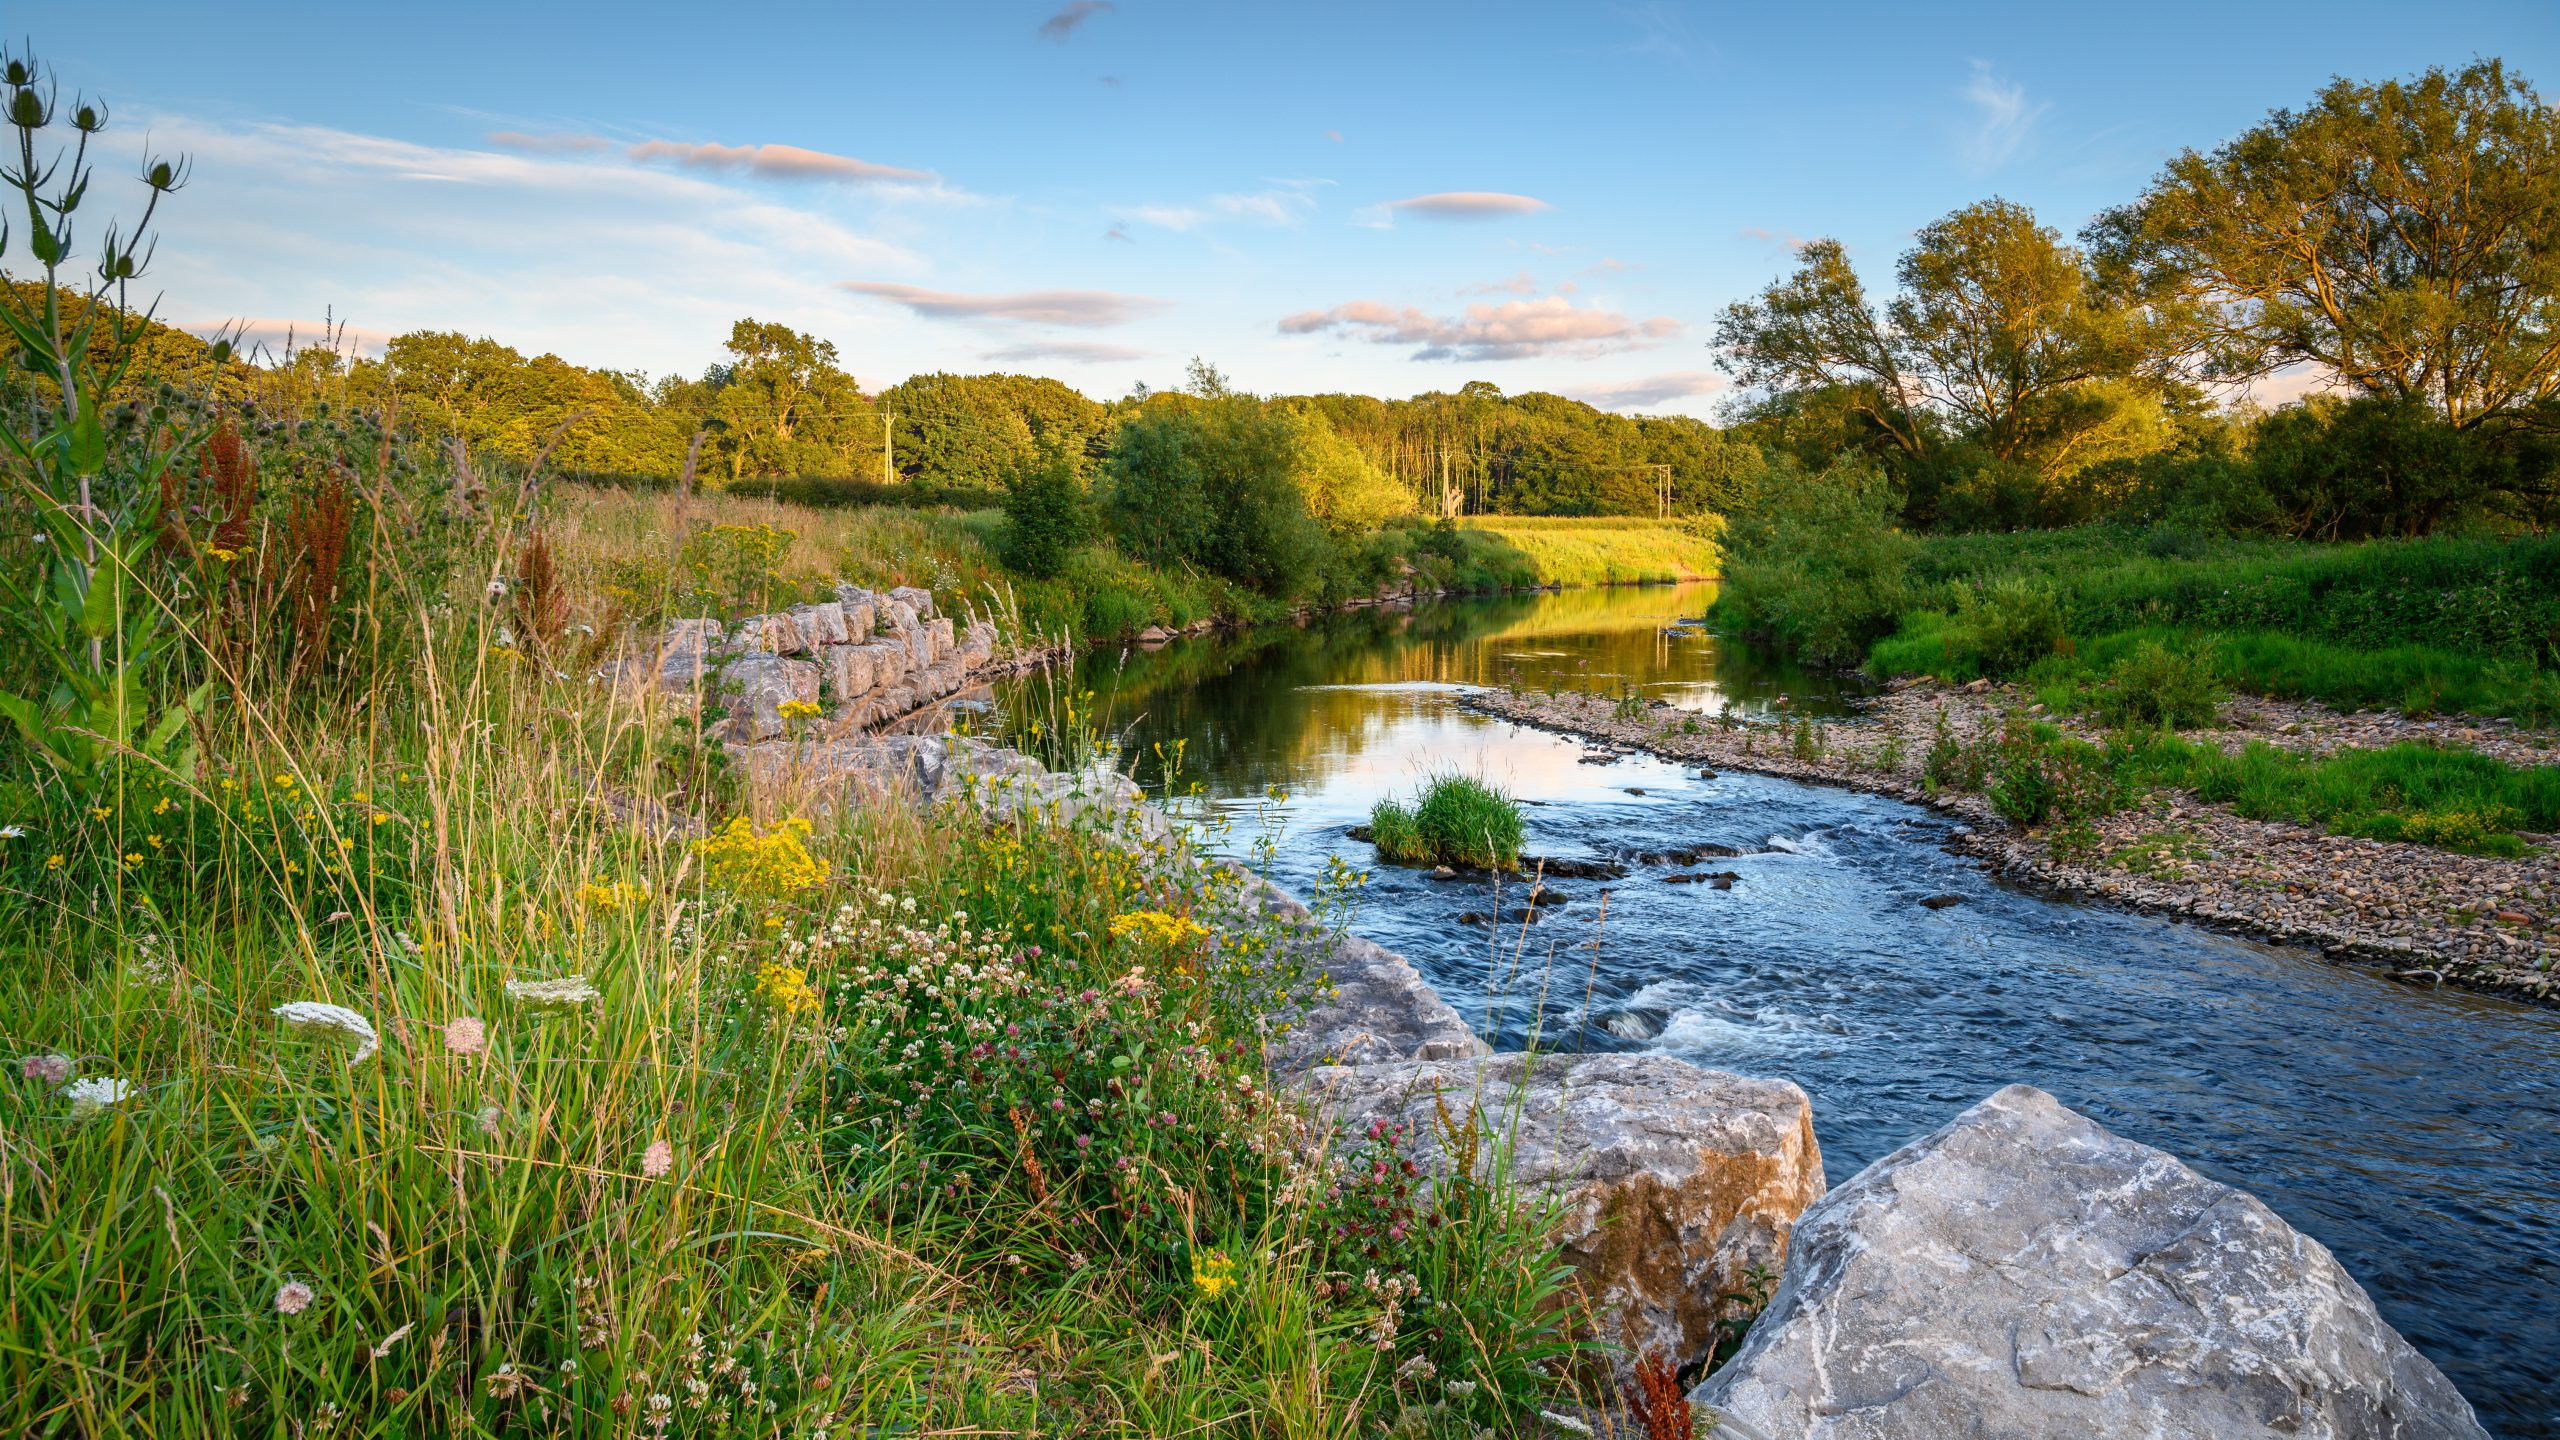 World Rewilding Day - a rewilding project in the NOrth of England including wildflowers and pond